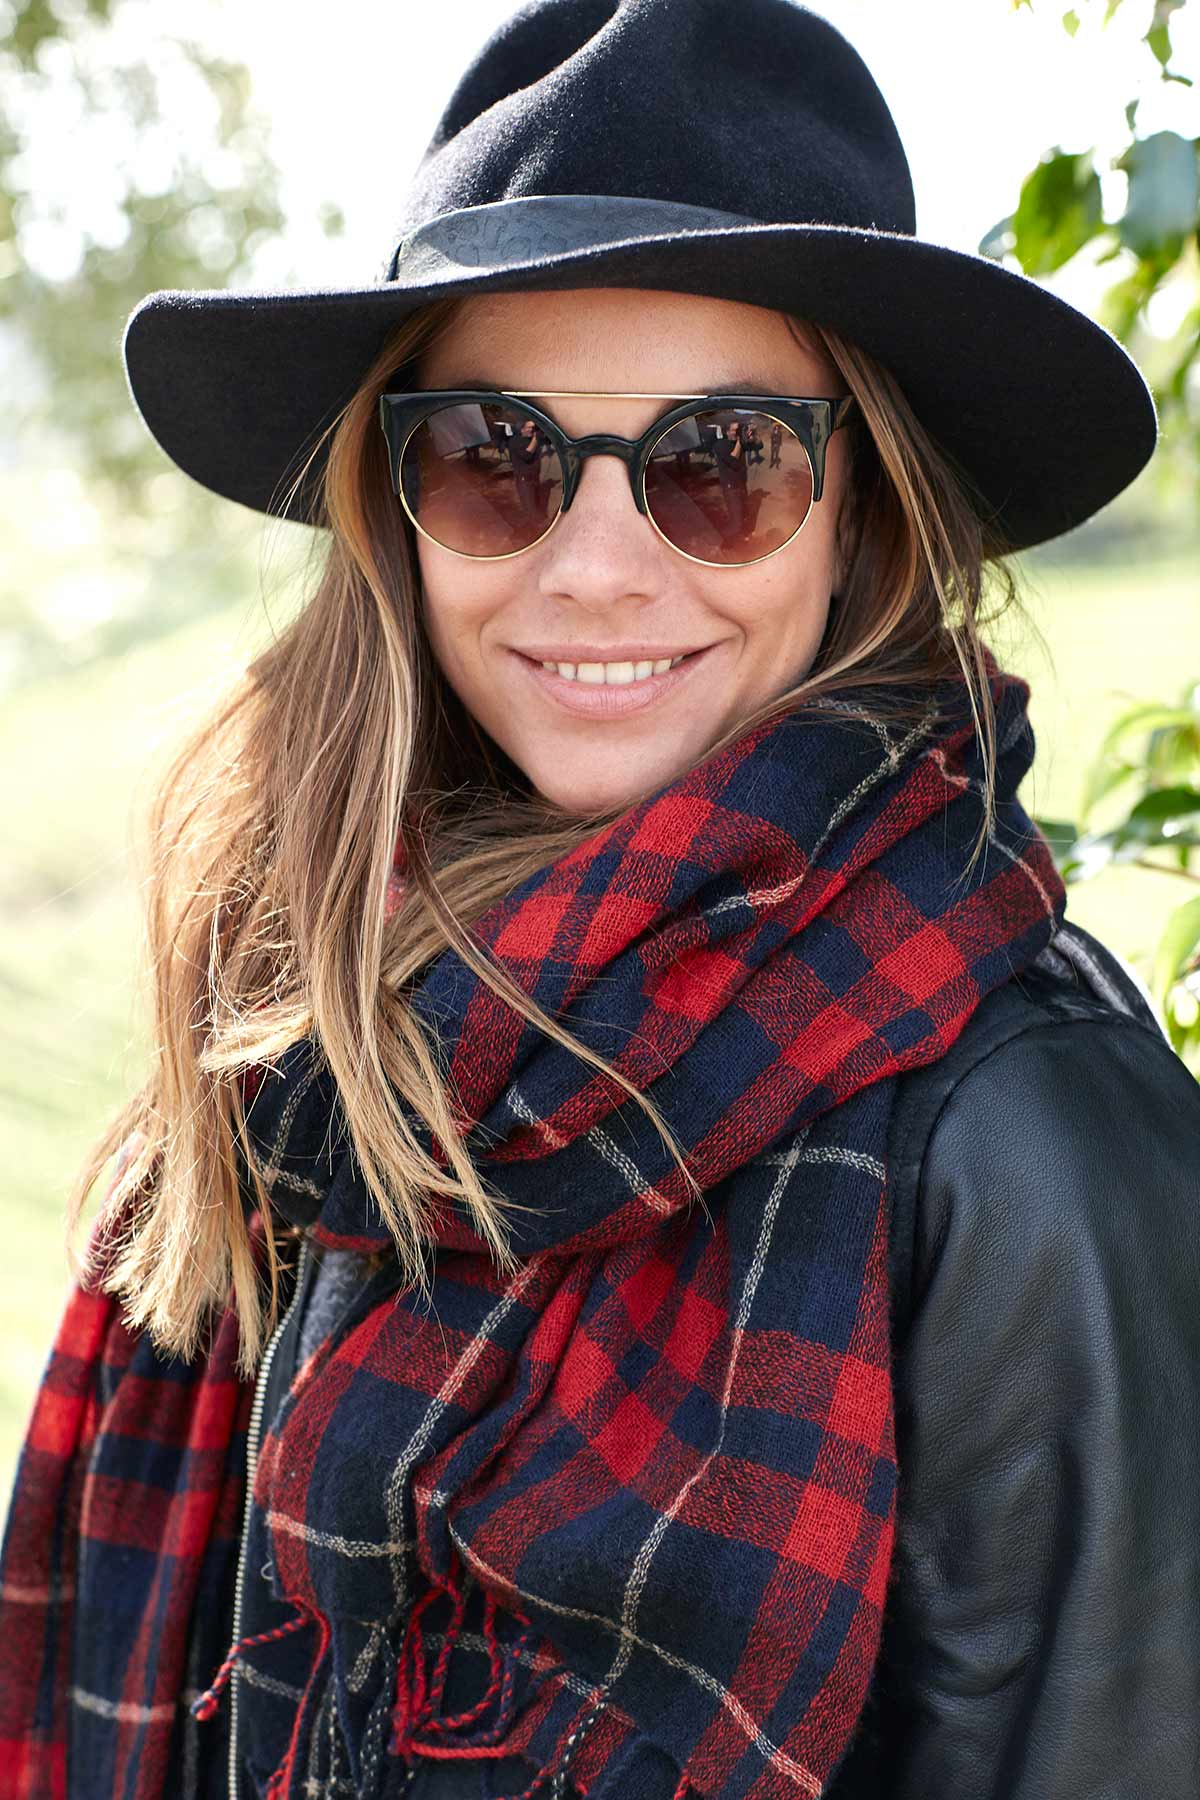 Lifestyle_Portrait_Advertising_Photographer_Los_Angeles_Chicago_Commerial_Photographer_Women_Sunglasses_Los_Angeles_Style_Cool_Young_Woman_Hat_Glasses_Scarf_Hipster_Mike_Henry_Photography_II